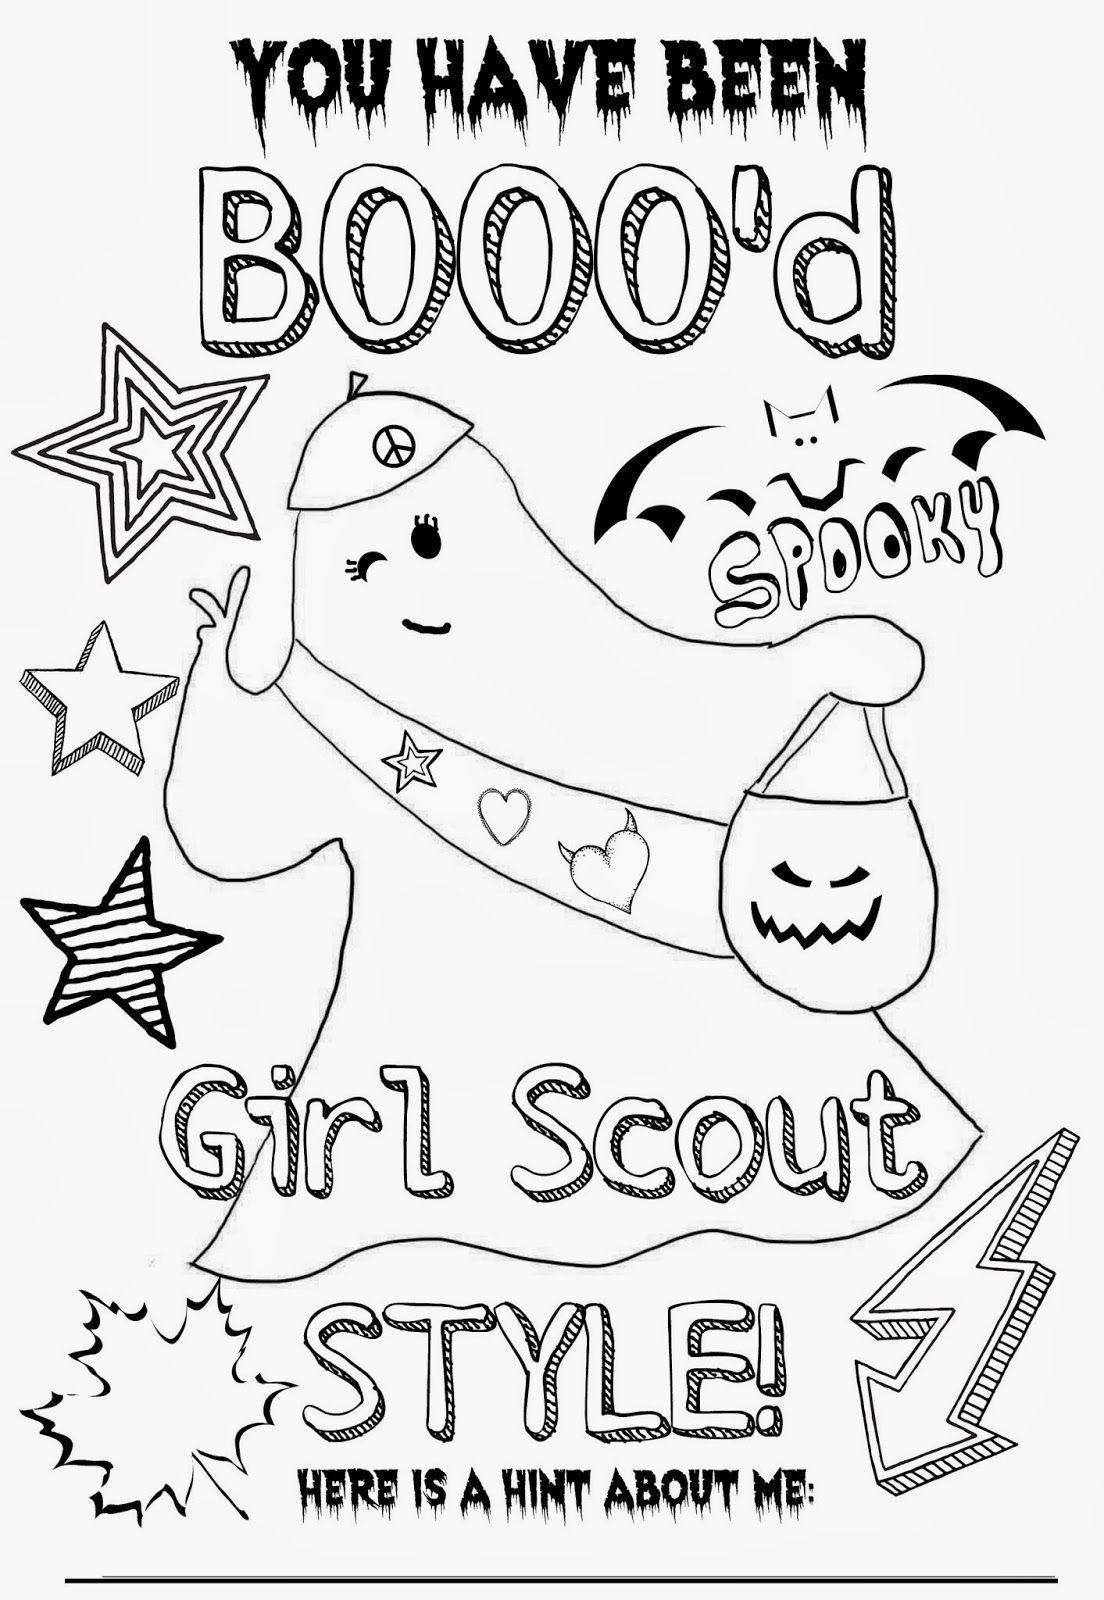 Muraco Girl Scout Troop 65235: You have been BOOO\'d | Girl Scouts ...